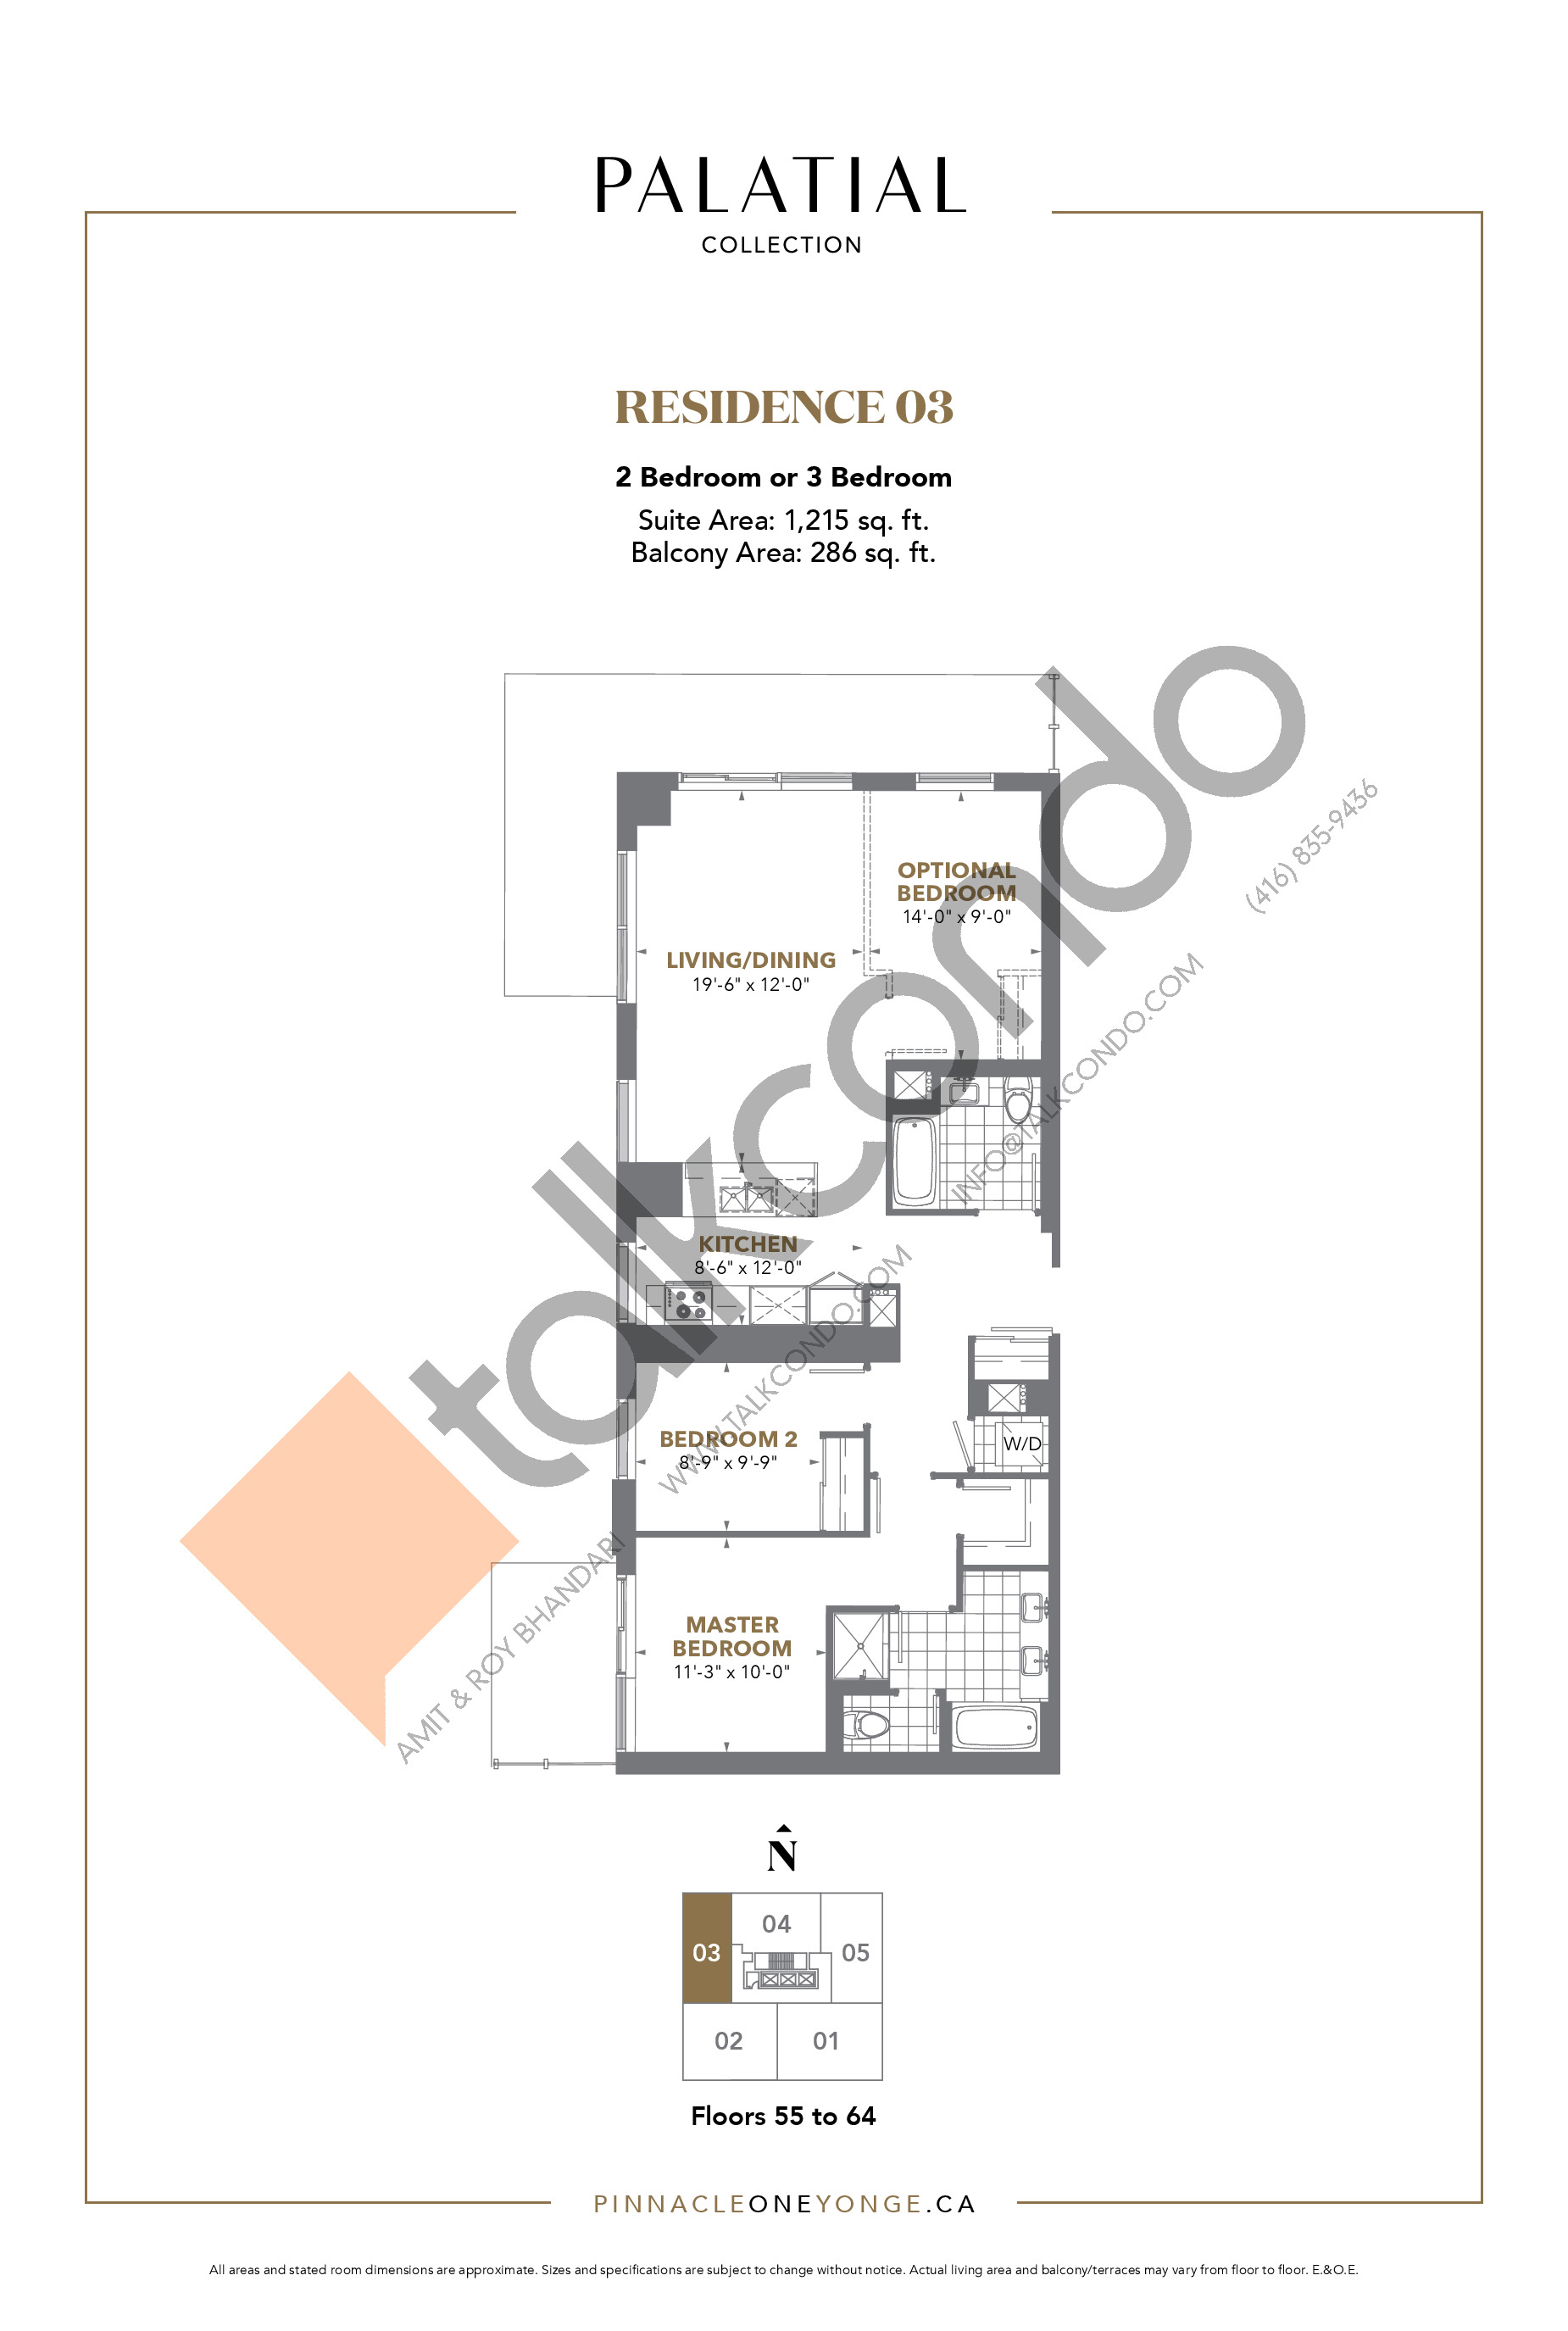 Palatial Collection - Residence 03 Floor Plan at The Prestige Condos at Pinnacle One Yonge - 1215 sq.ft